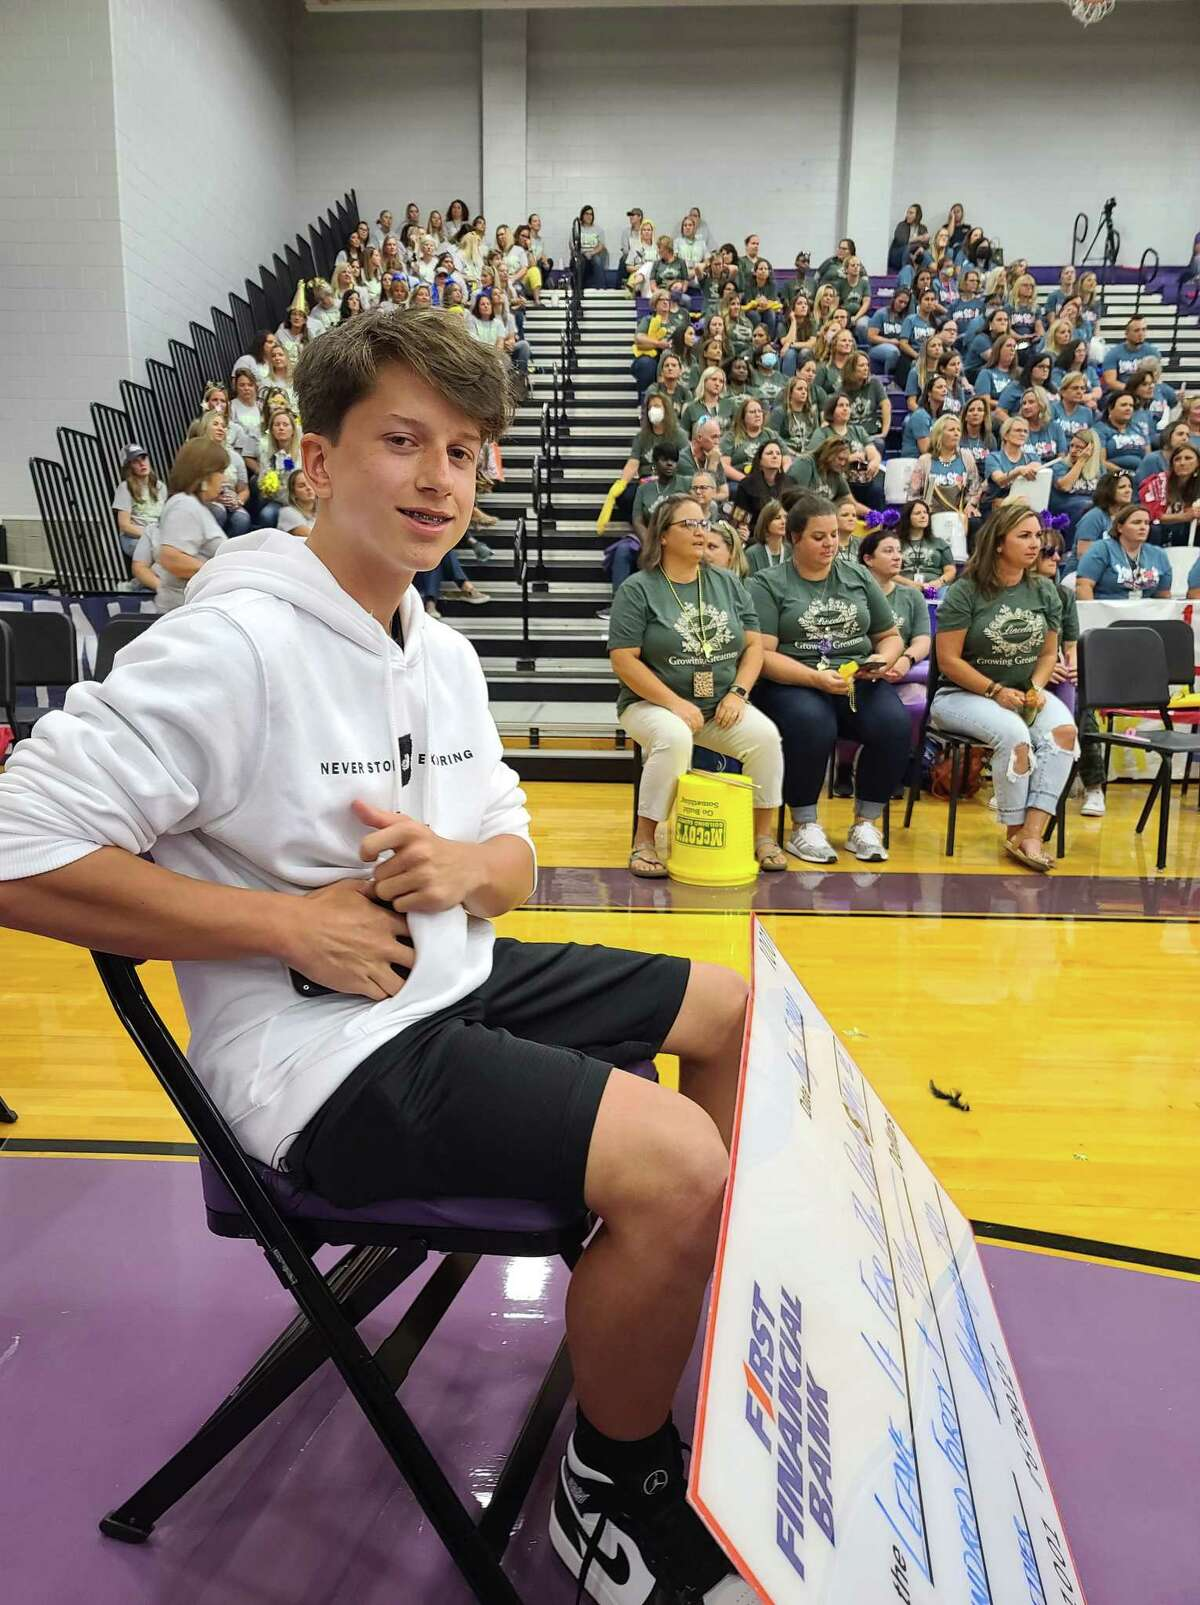 On Thursday, the Montgomery ISD convocation ceremony took place and they honored Jayson Kimberly who started the nonprofit Leave it for the Pooch.